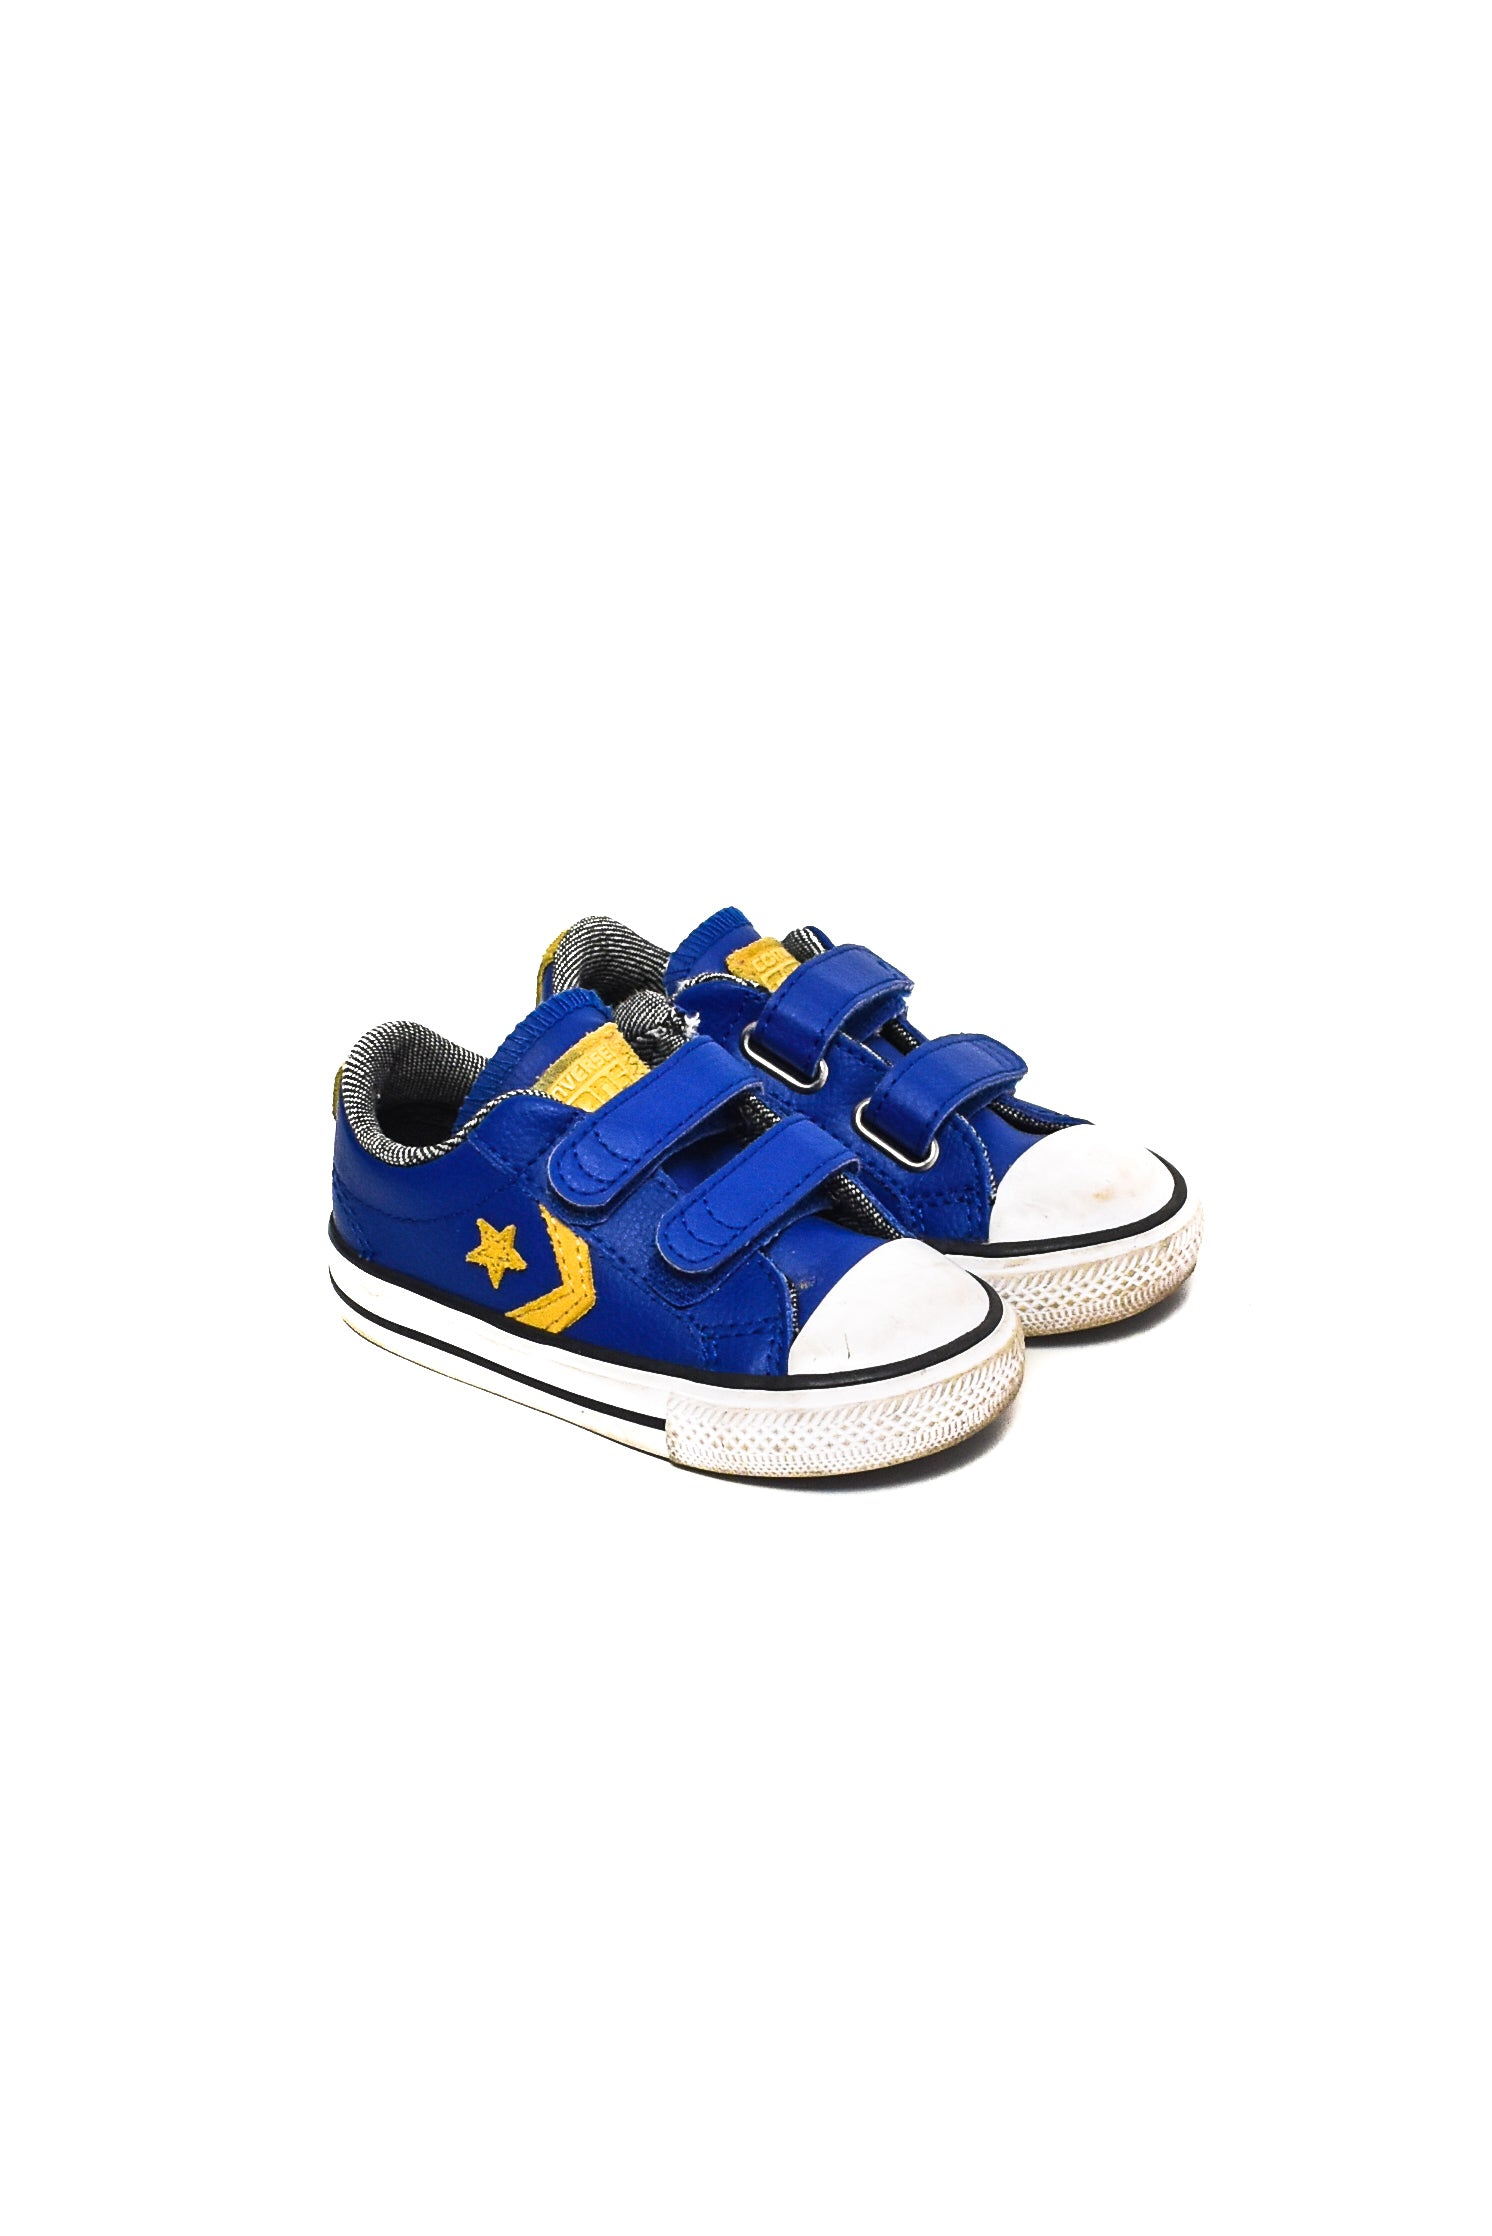 10006451 Converse Baby~Shoes 18-24M at Retykle